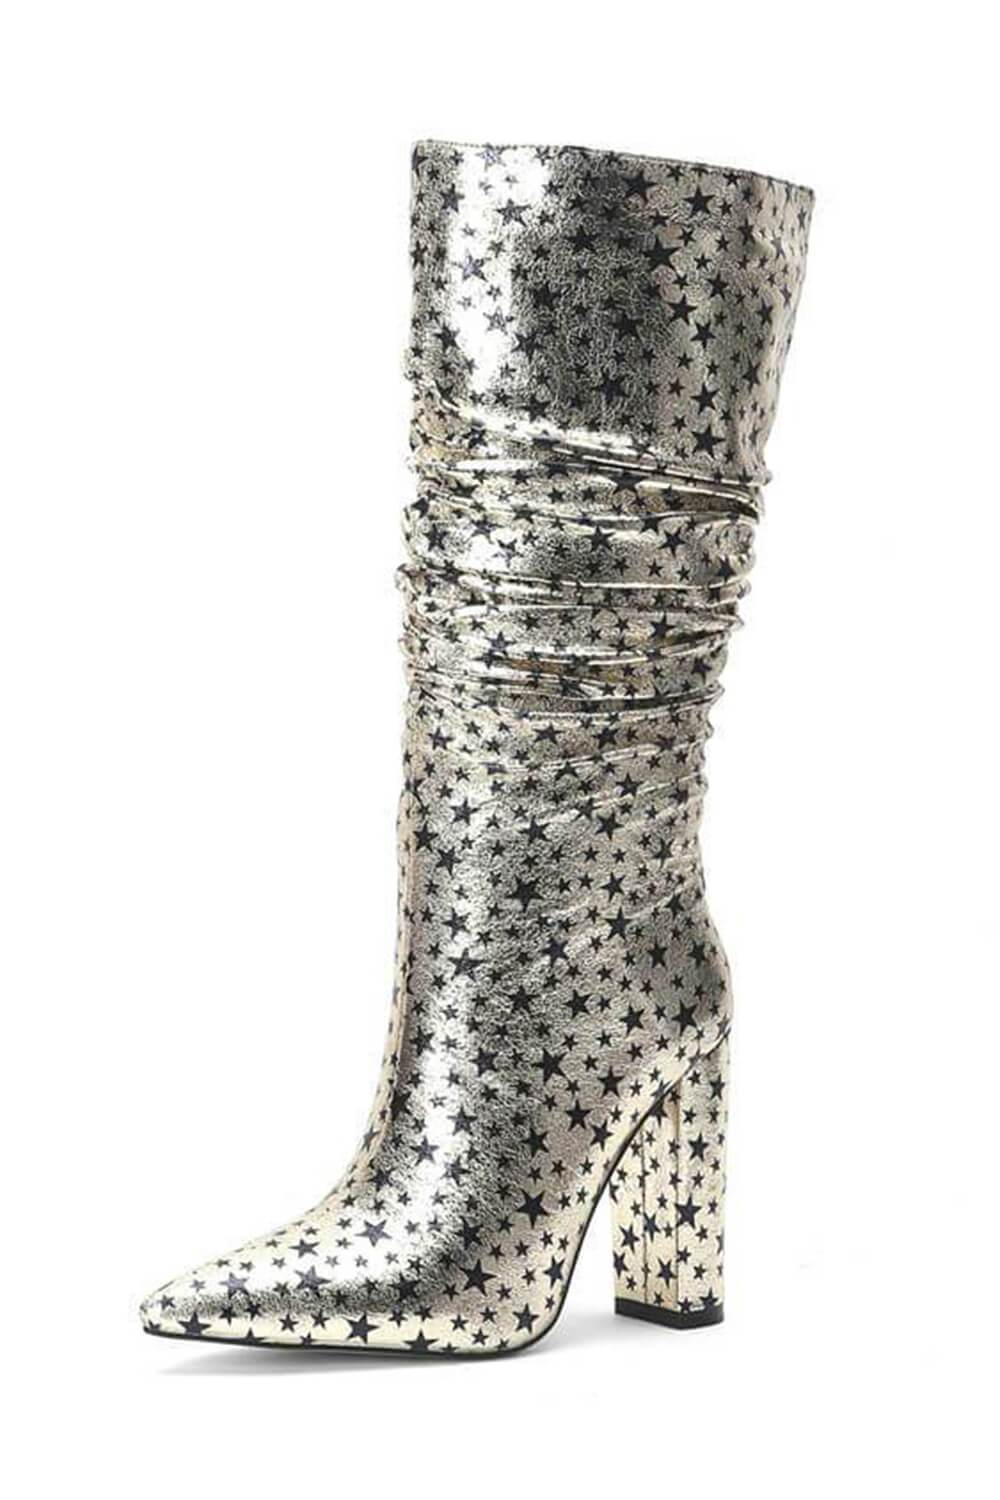 Metallic Gold Glitter Star Ruched Kee High Boots (4307981336635)